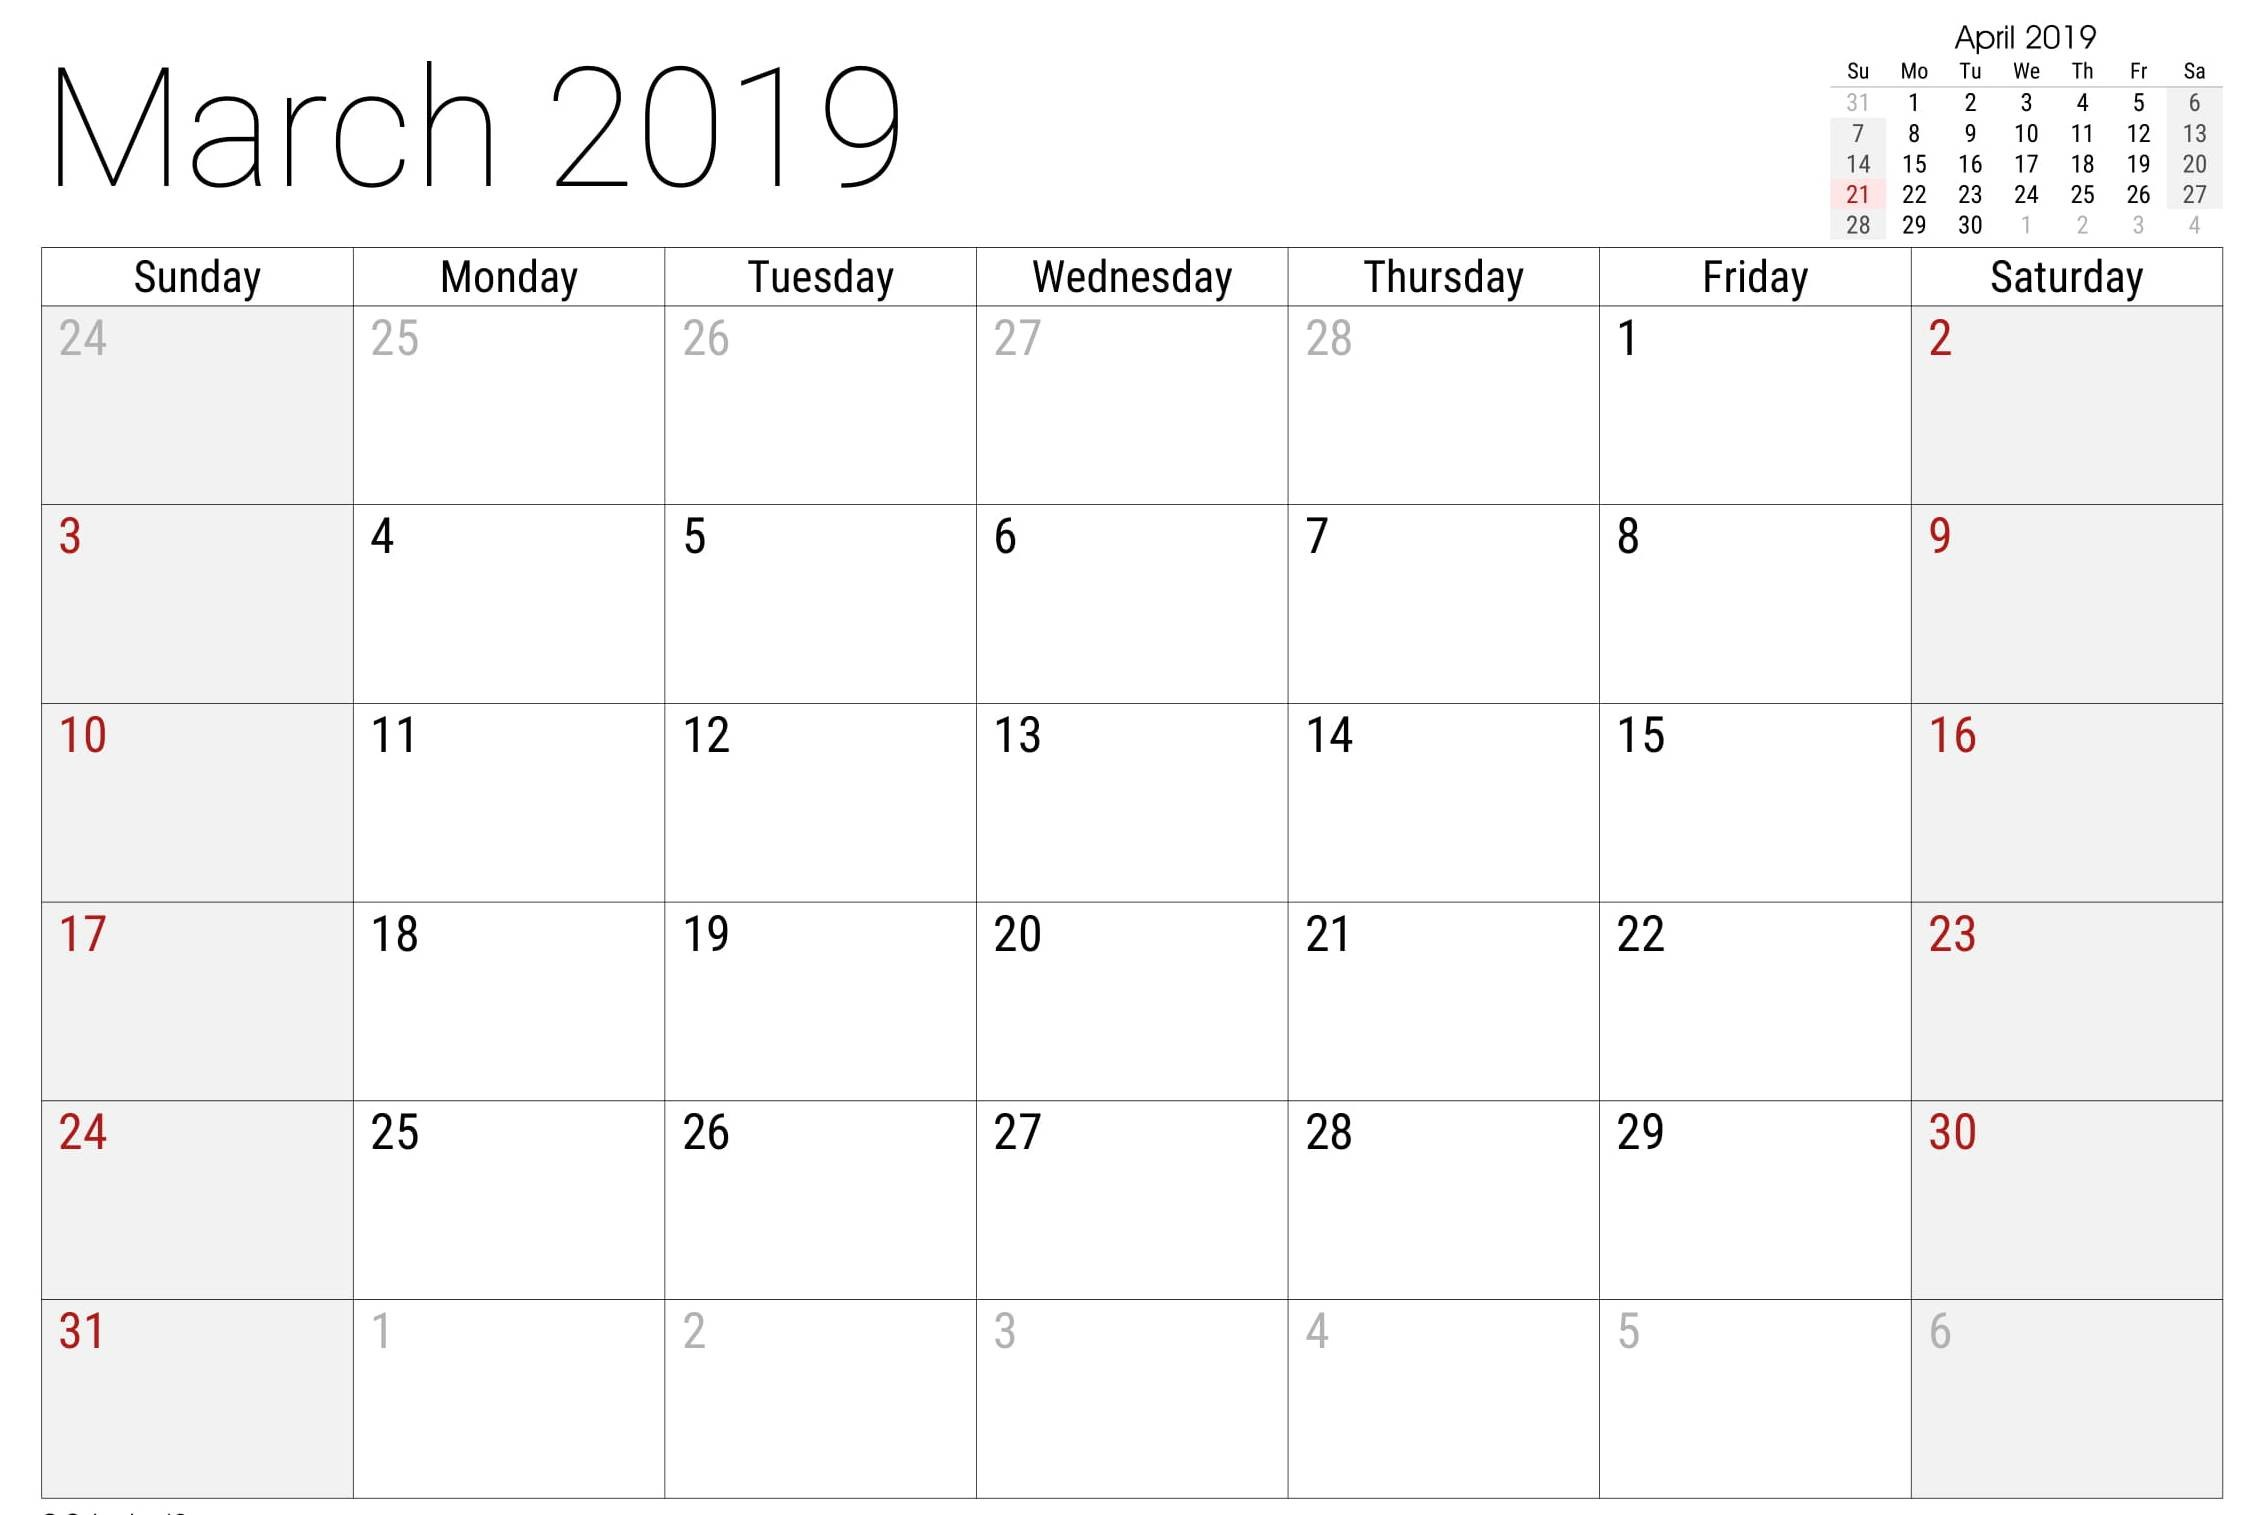 March Calendar 2019 Actual Print March Calendar 2019 – Free Calendar Templates & Worksheets for Of March Calendar 2019 Más Populares February March Calendar 2019 2018 Printable Calendar Store